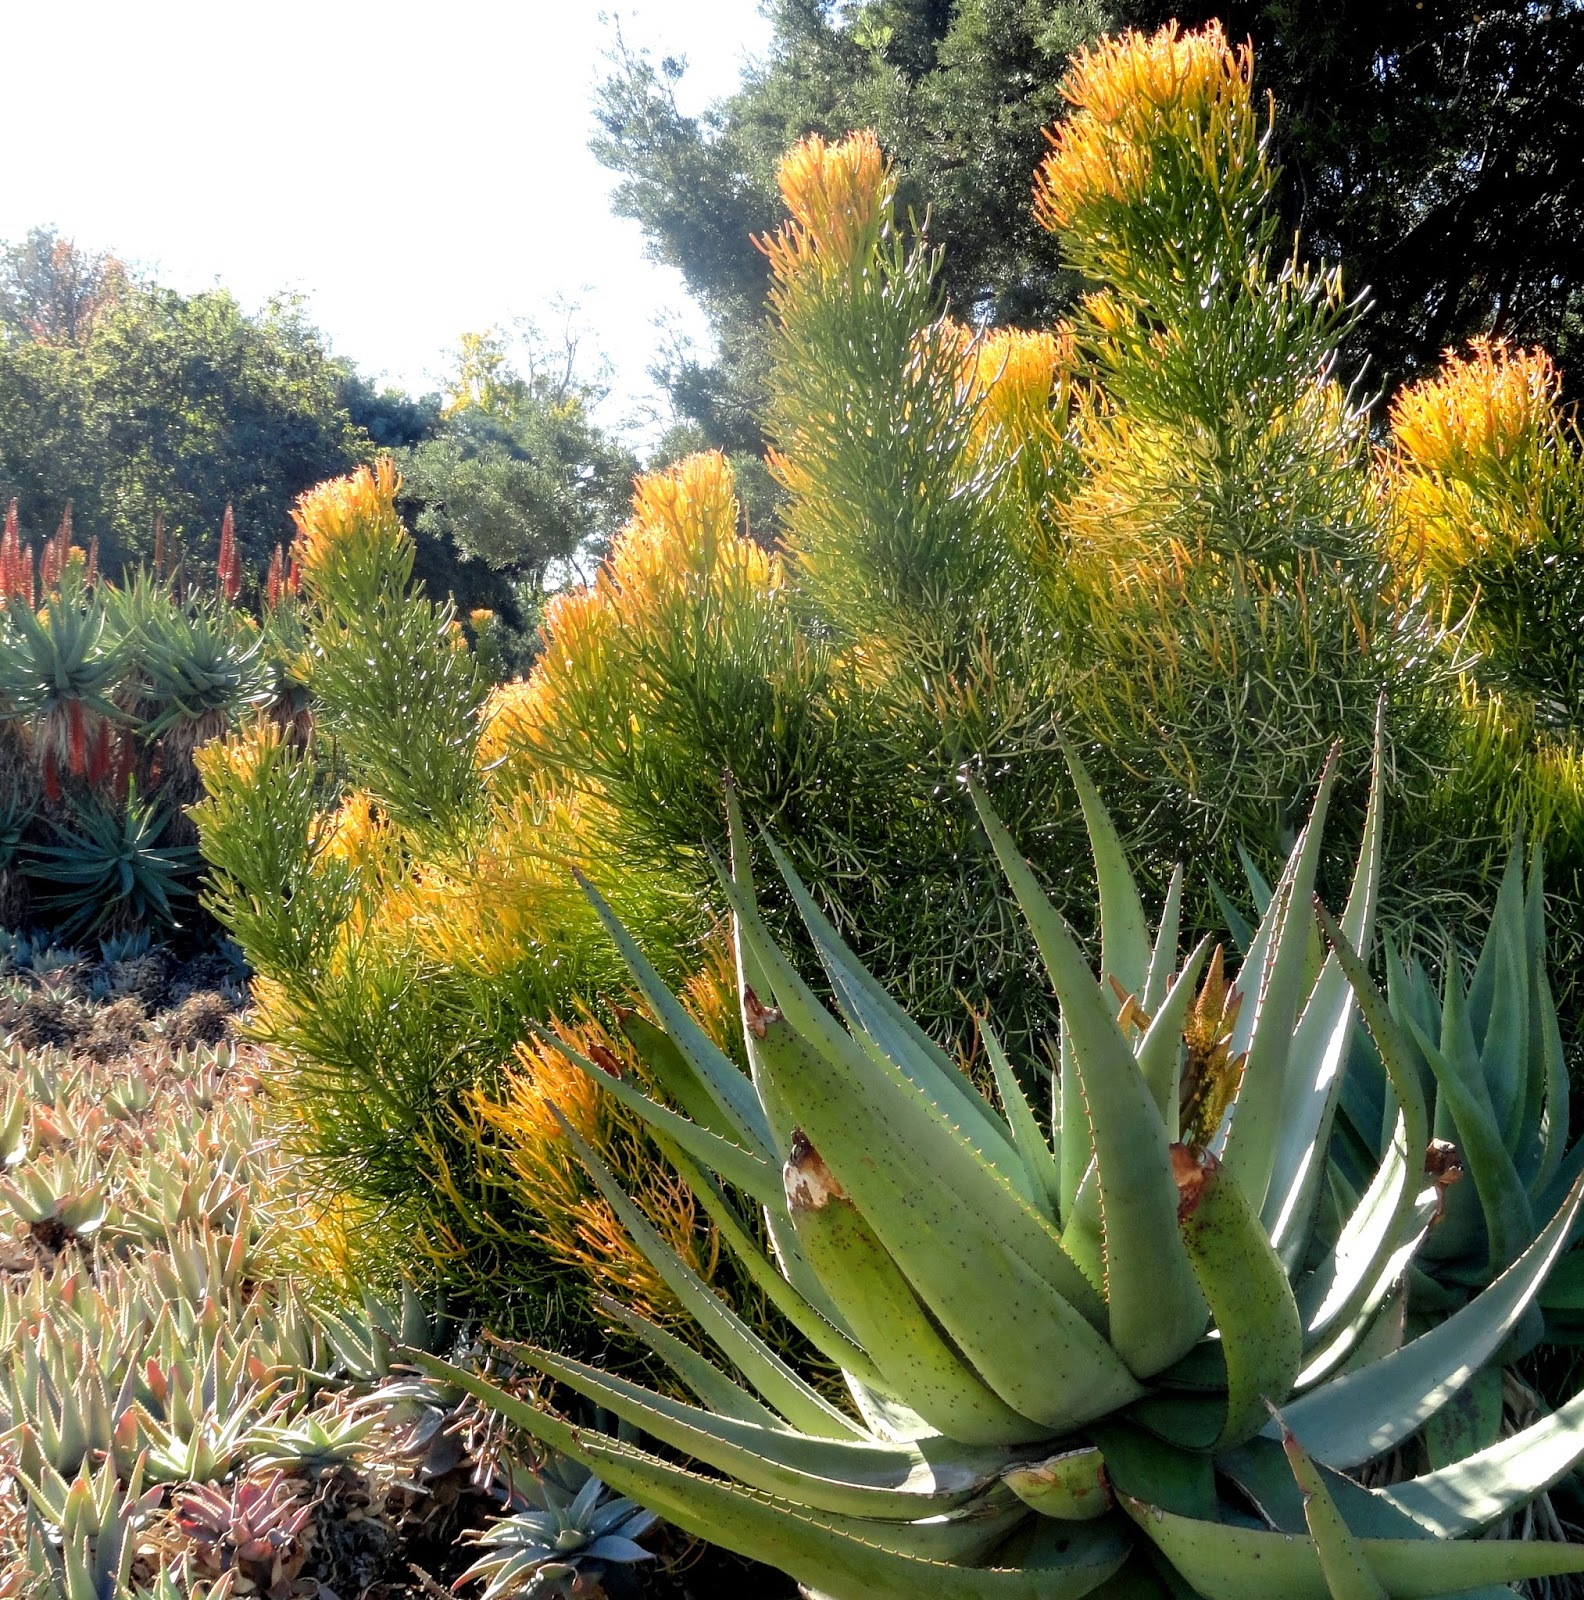 My Visit To The Los Angeles County Arboretum And Botanic Garden, Part Two